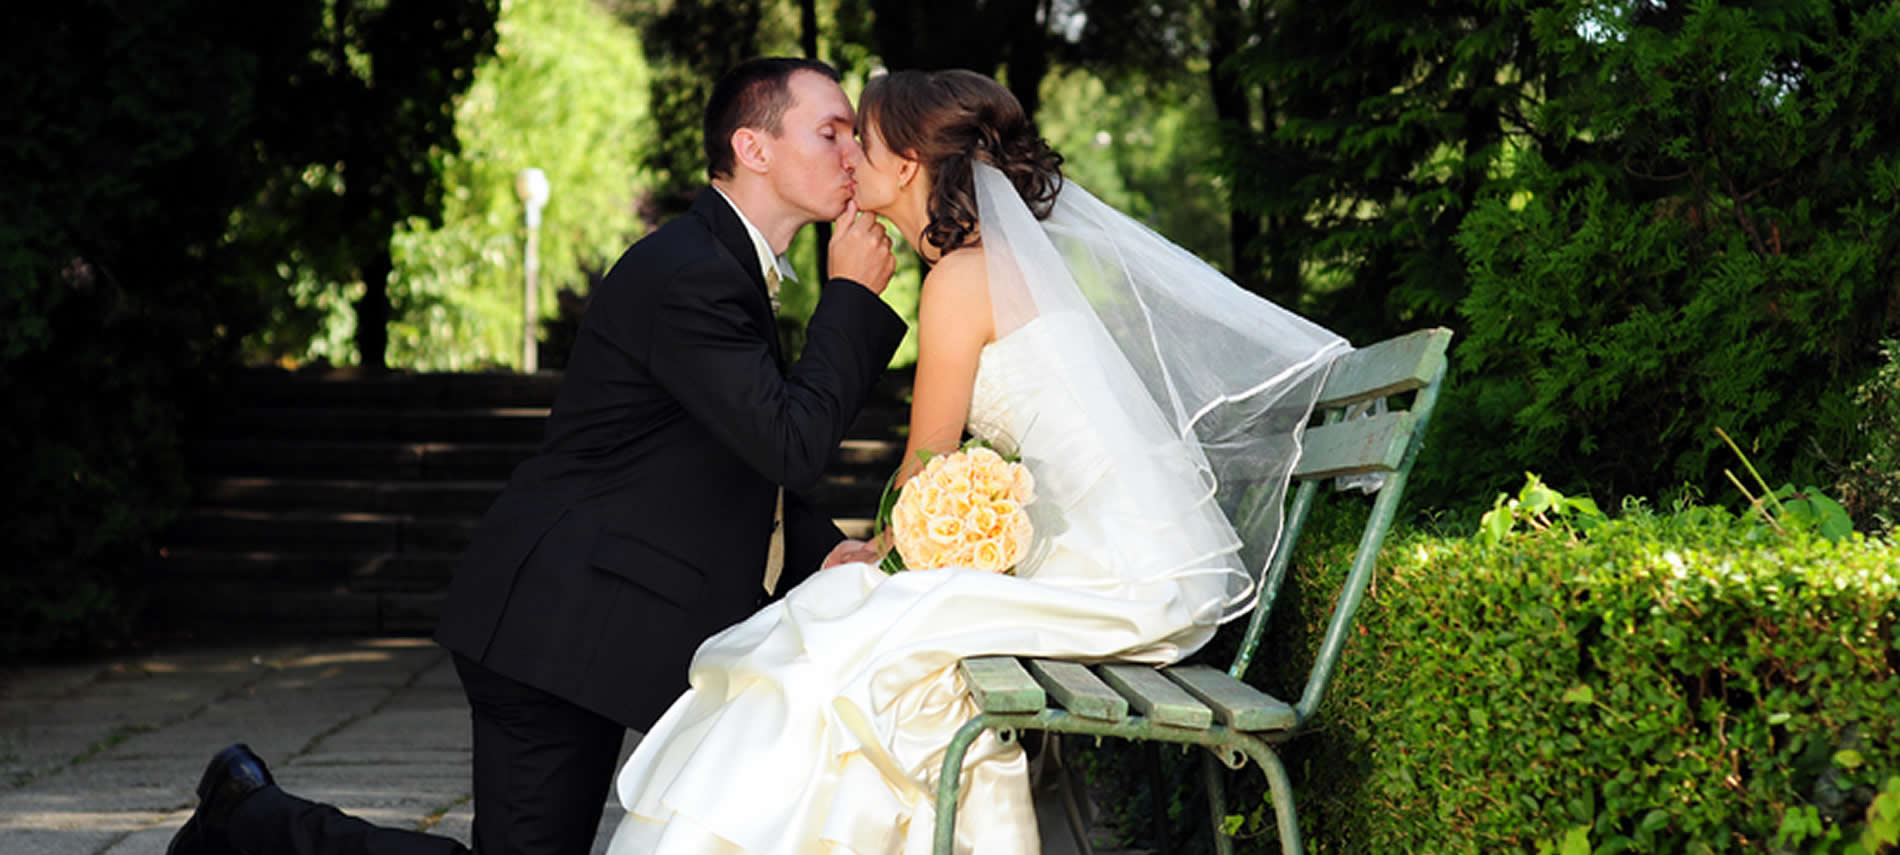 sonoma wine country weddings & elopements